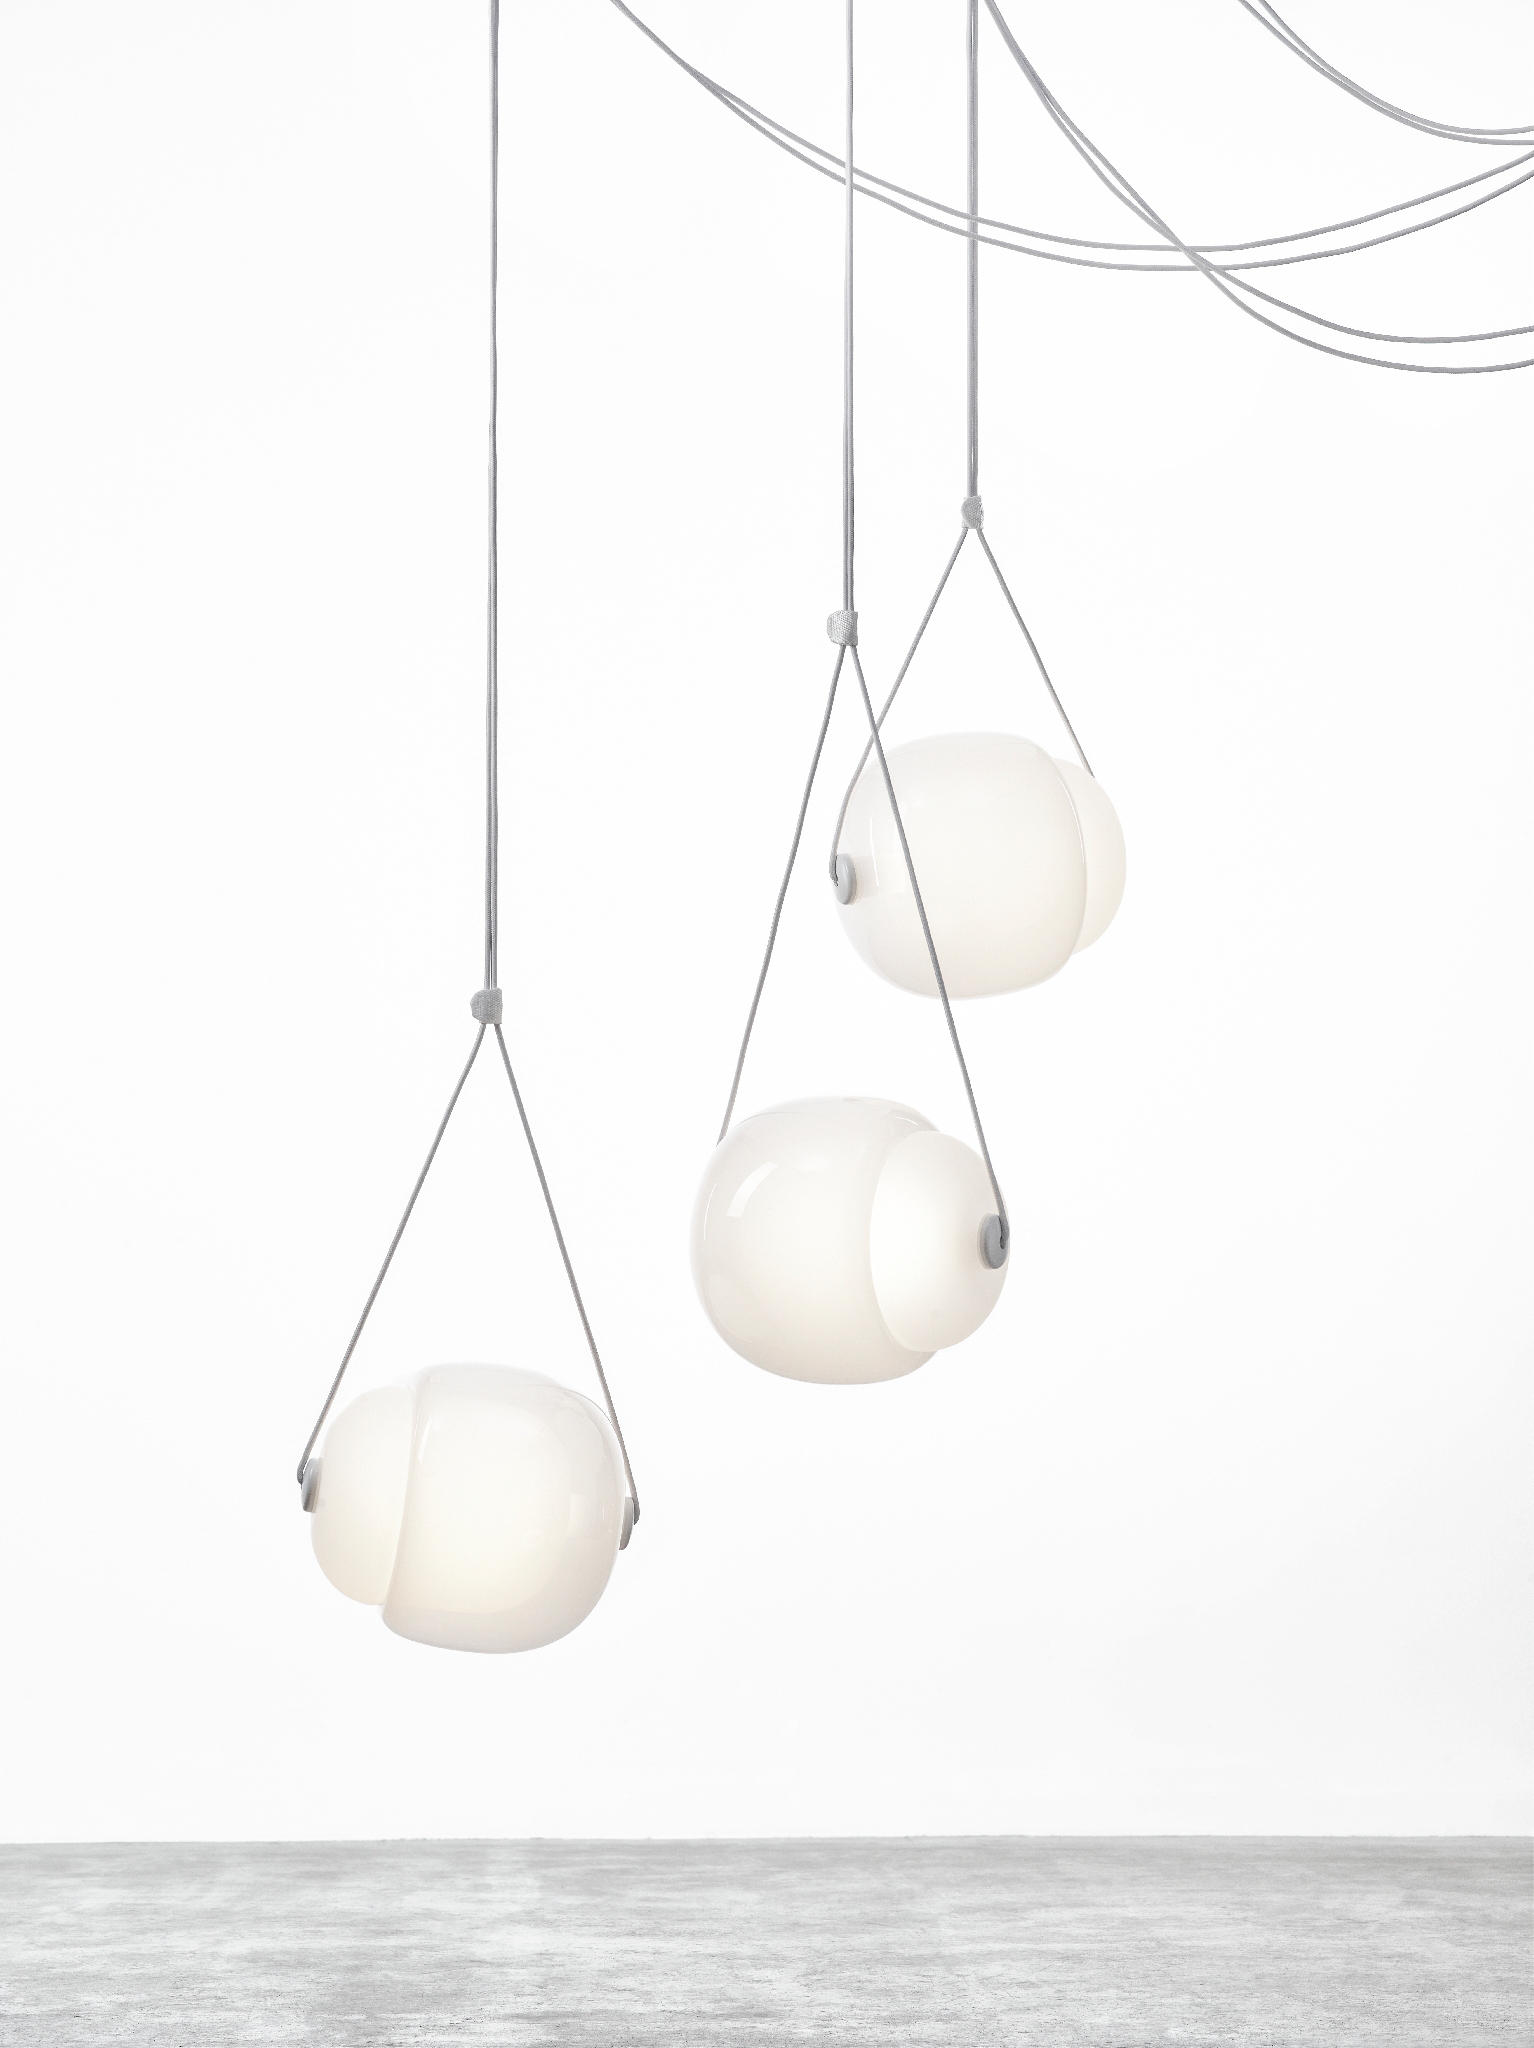 Capsula Triangle PC943 By Brokis | General Lighting ...